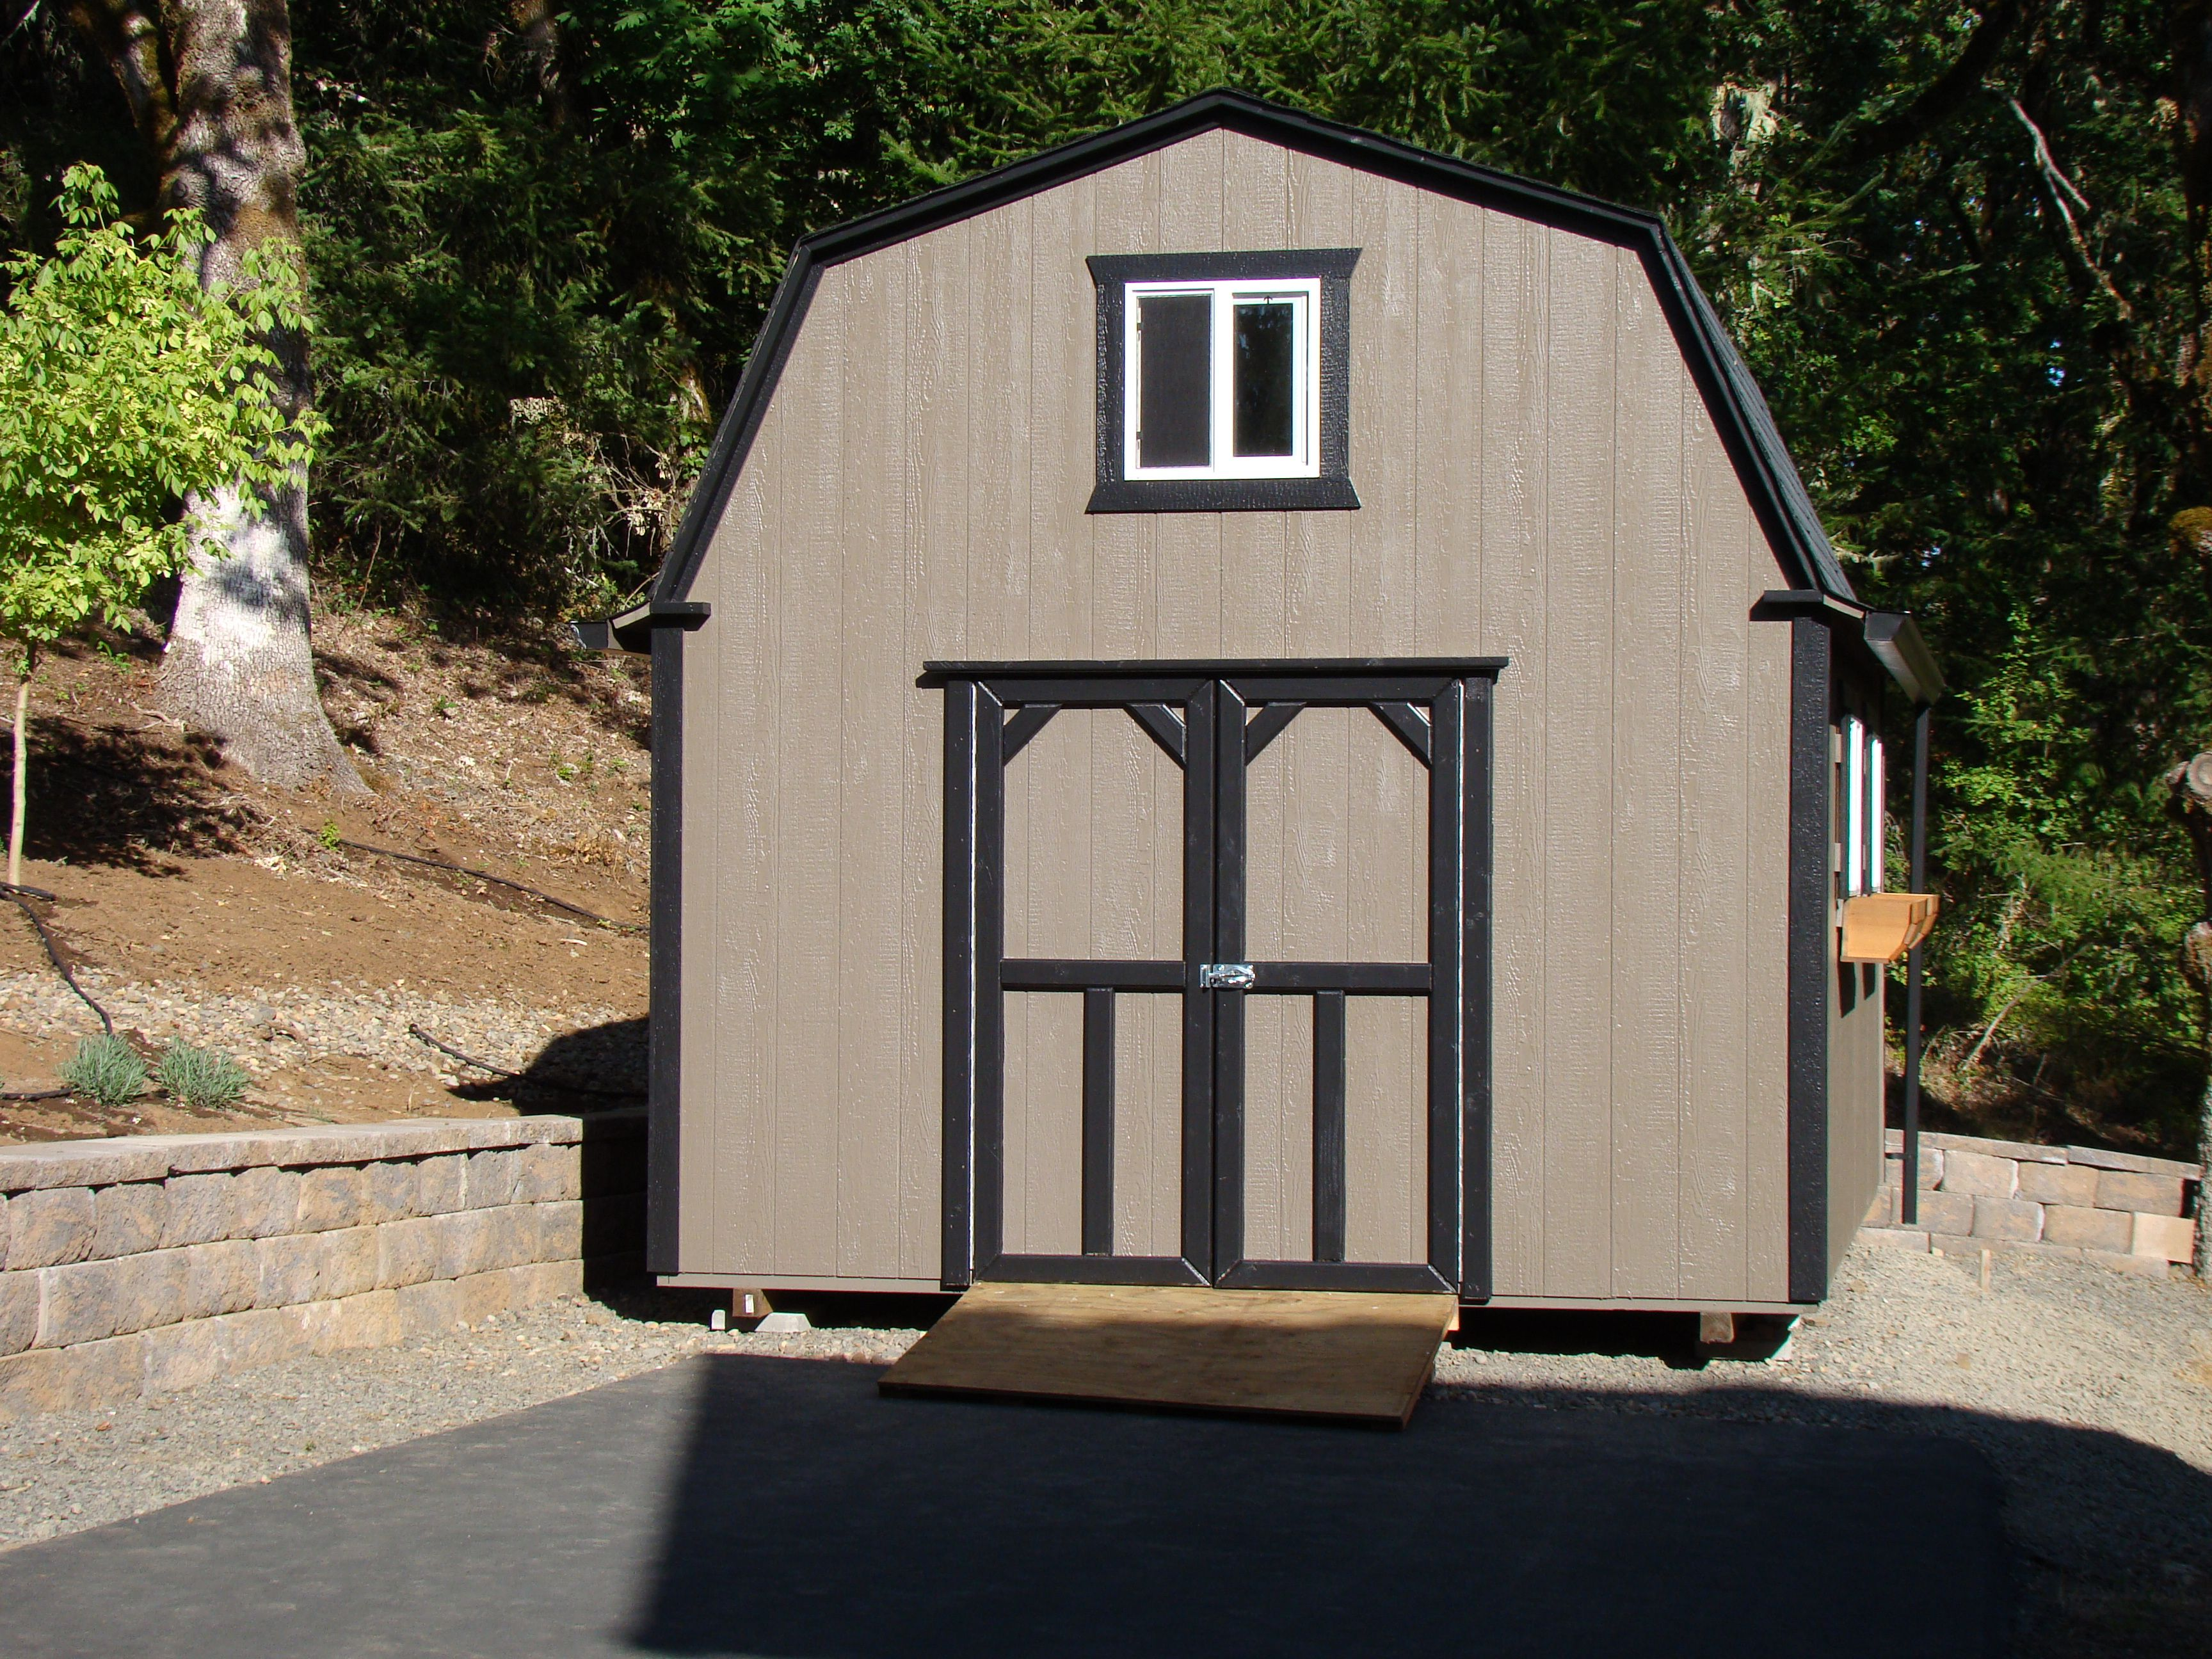 Barn Style With Flower Box Gutter Ramp And Double Door